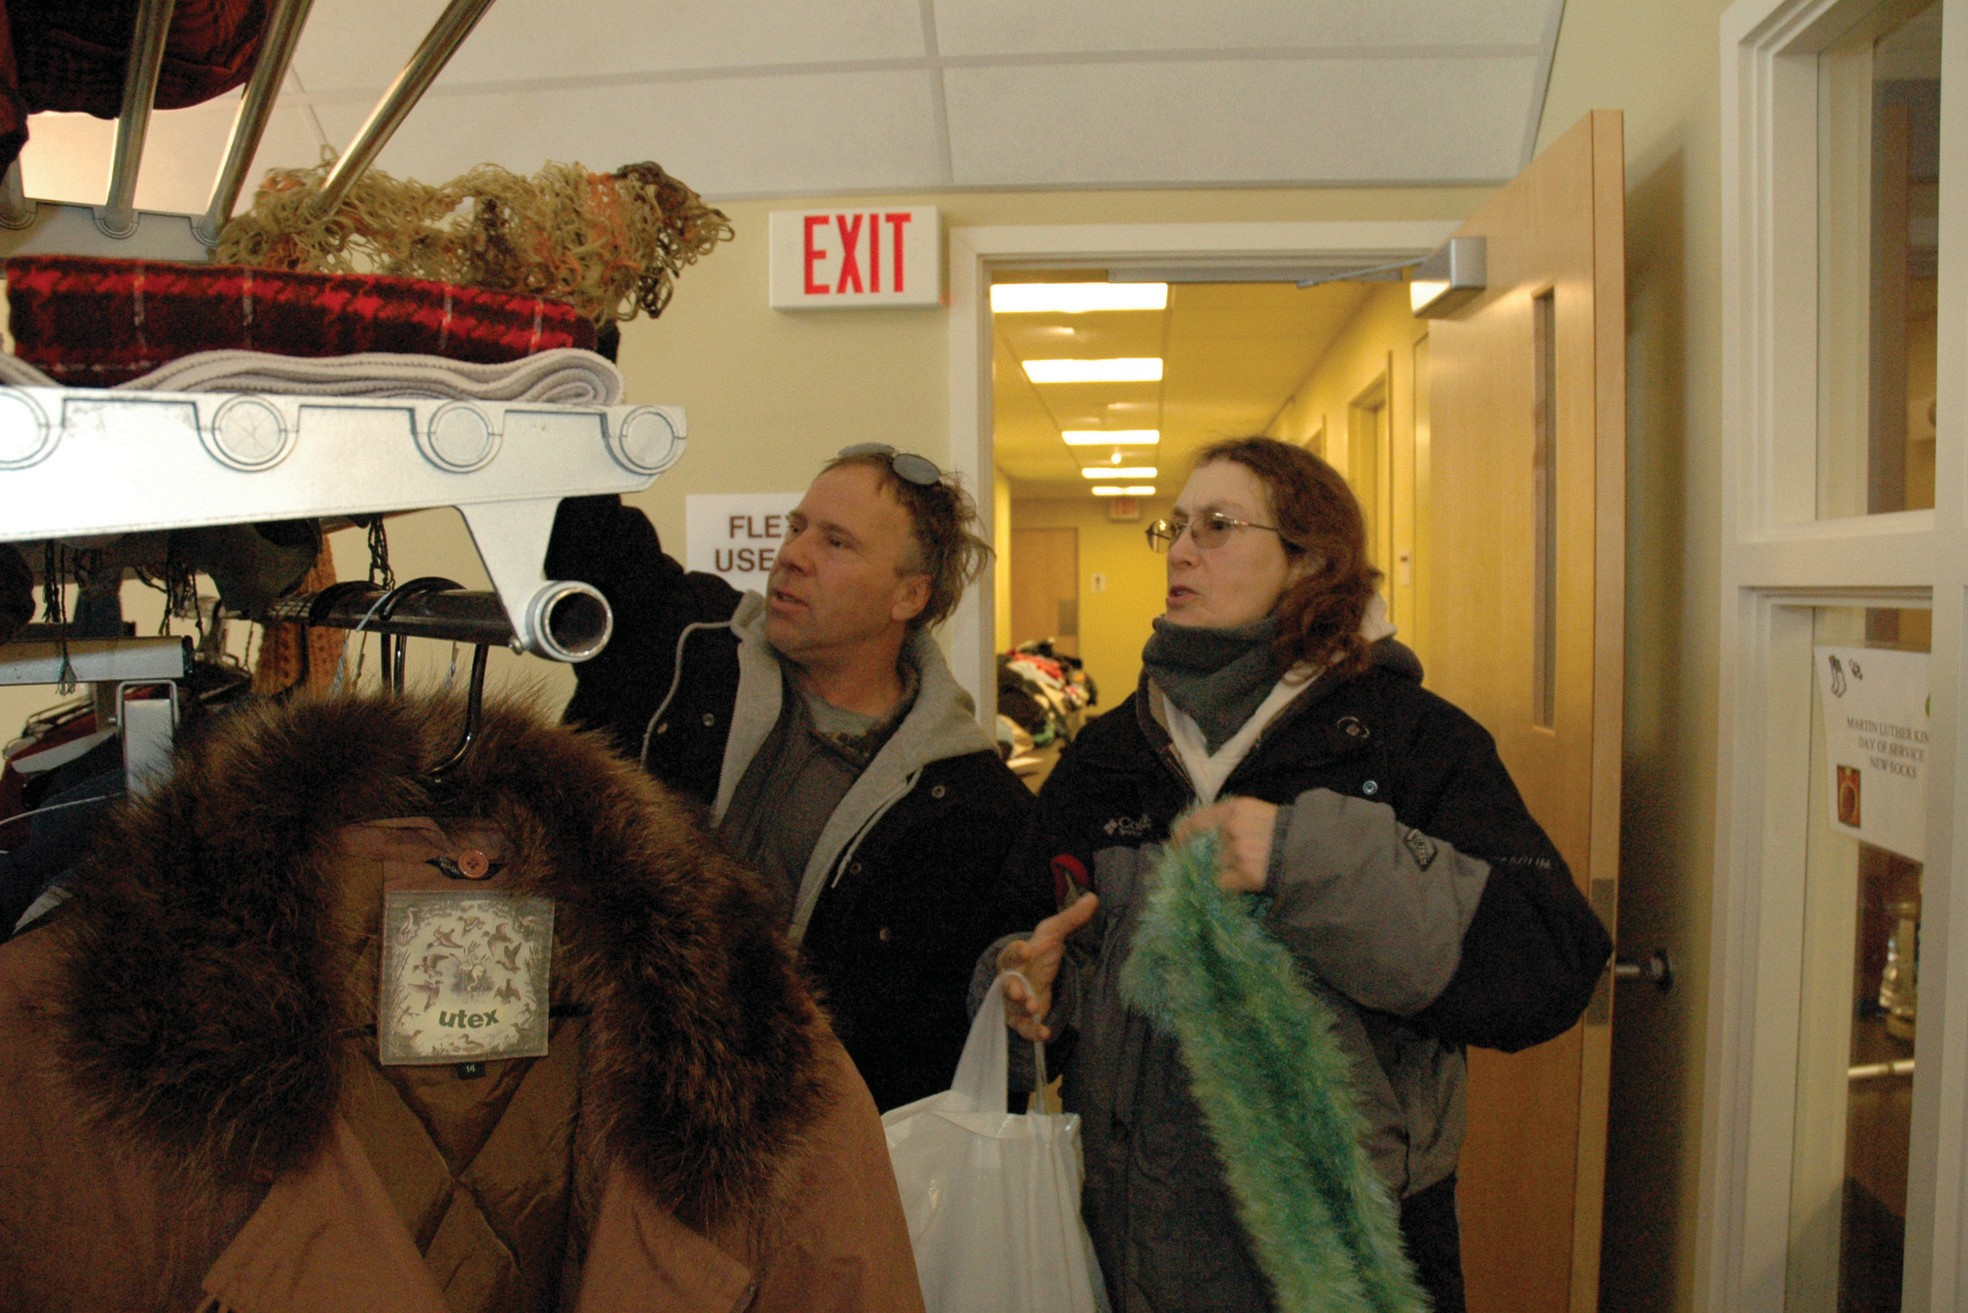 Bob and Sharon, who declined to give their last names, of Old Orchard Beach look at a rack of used clothing at First Parish Congregational Church, United Church of Christ in Saco Monday.